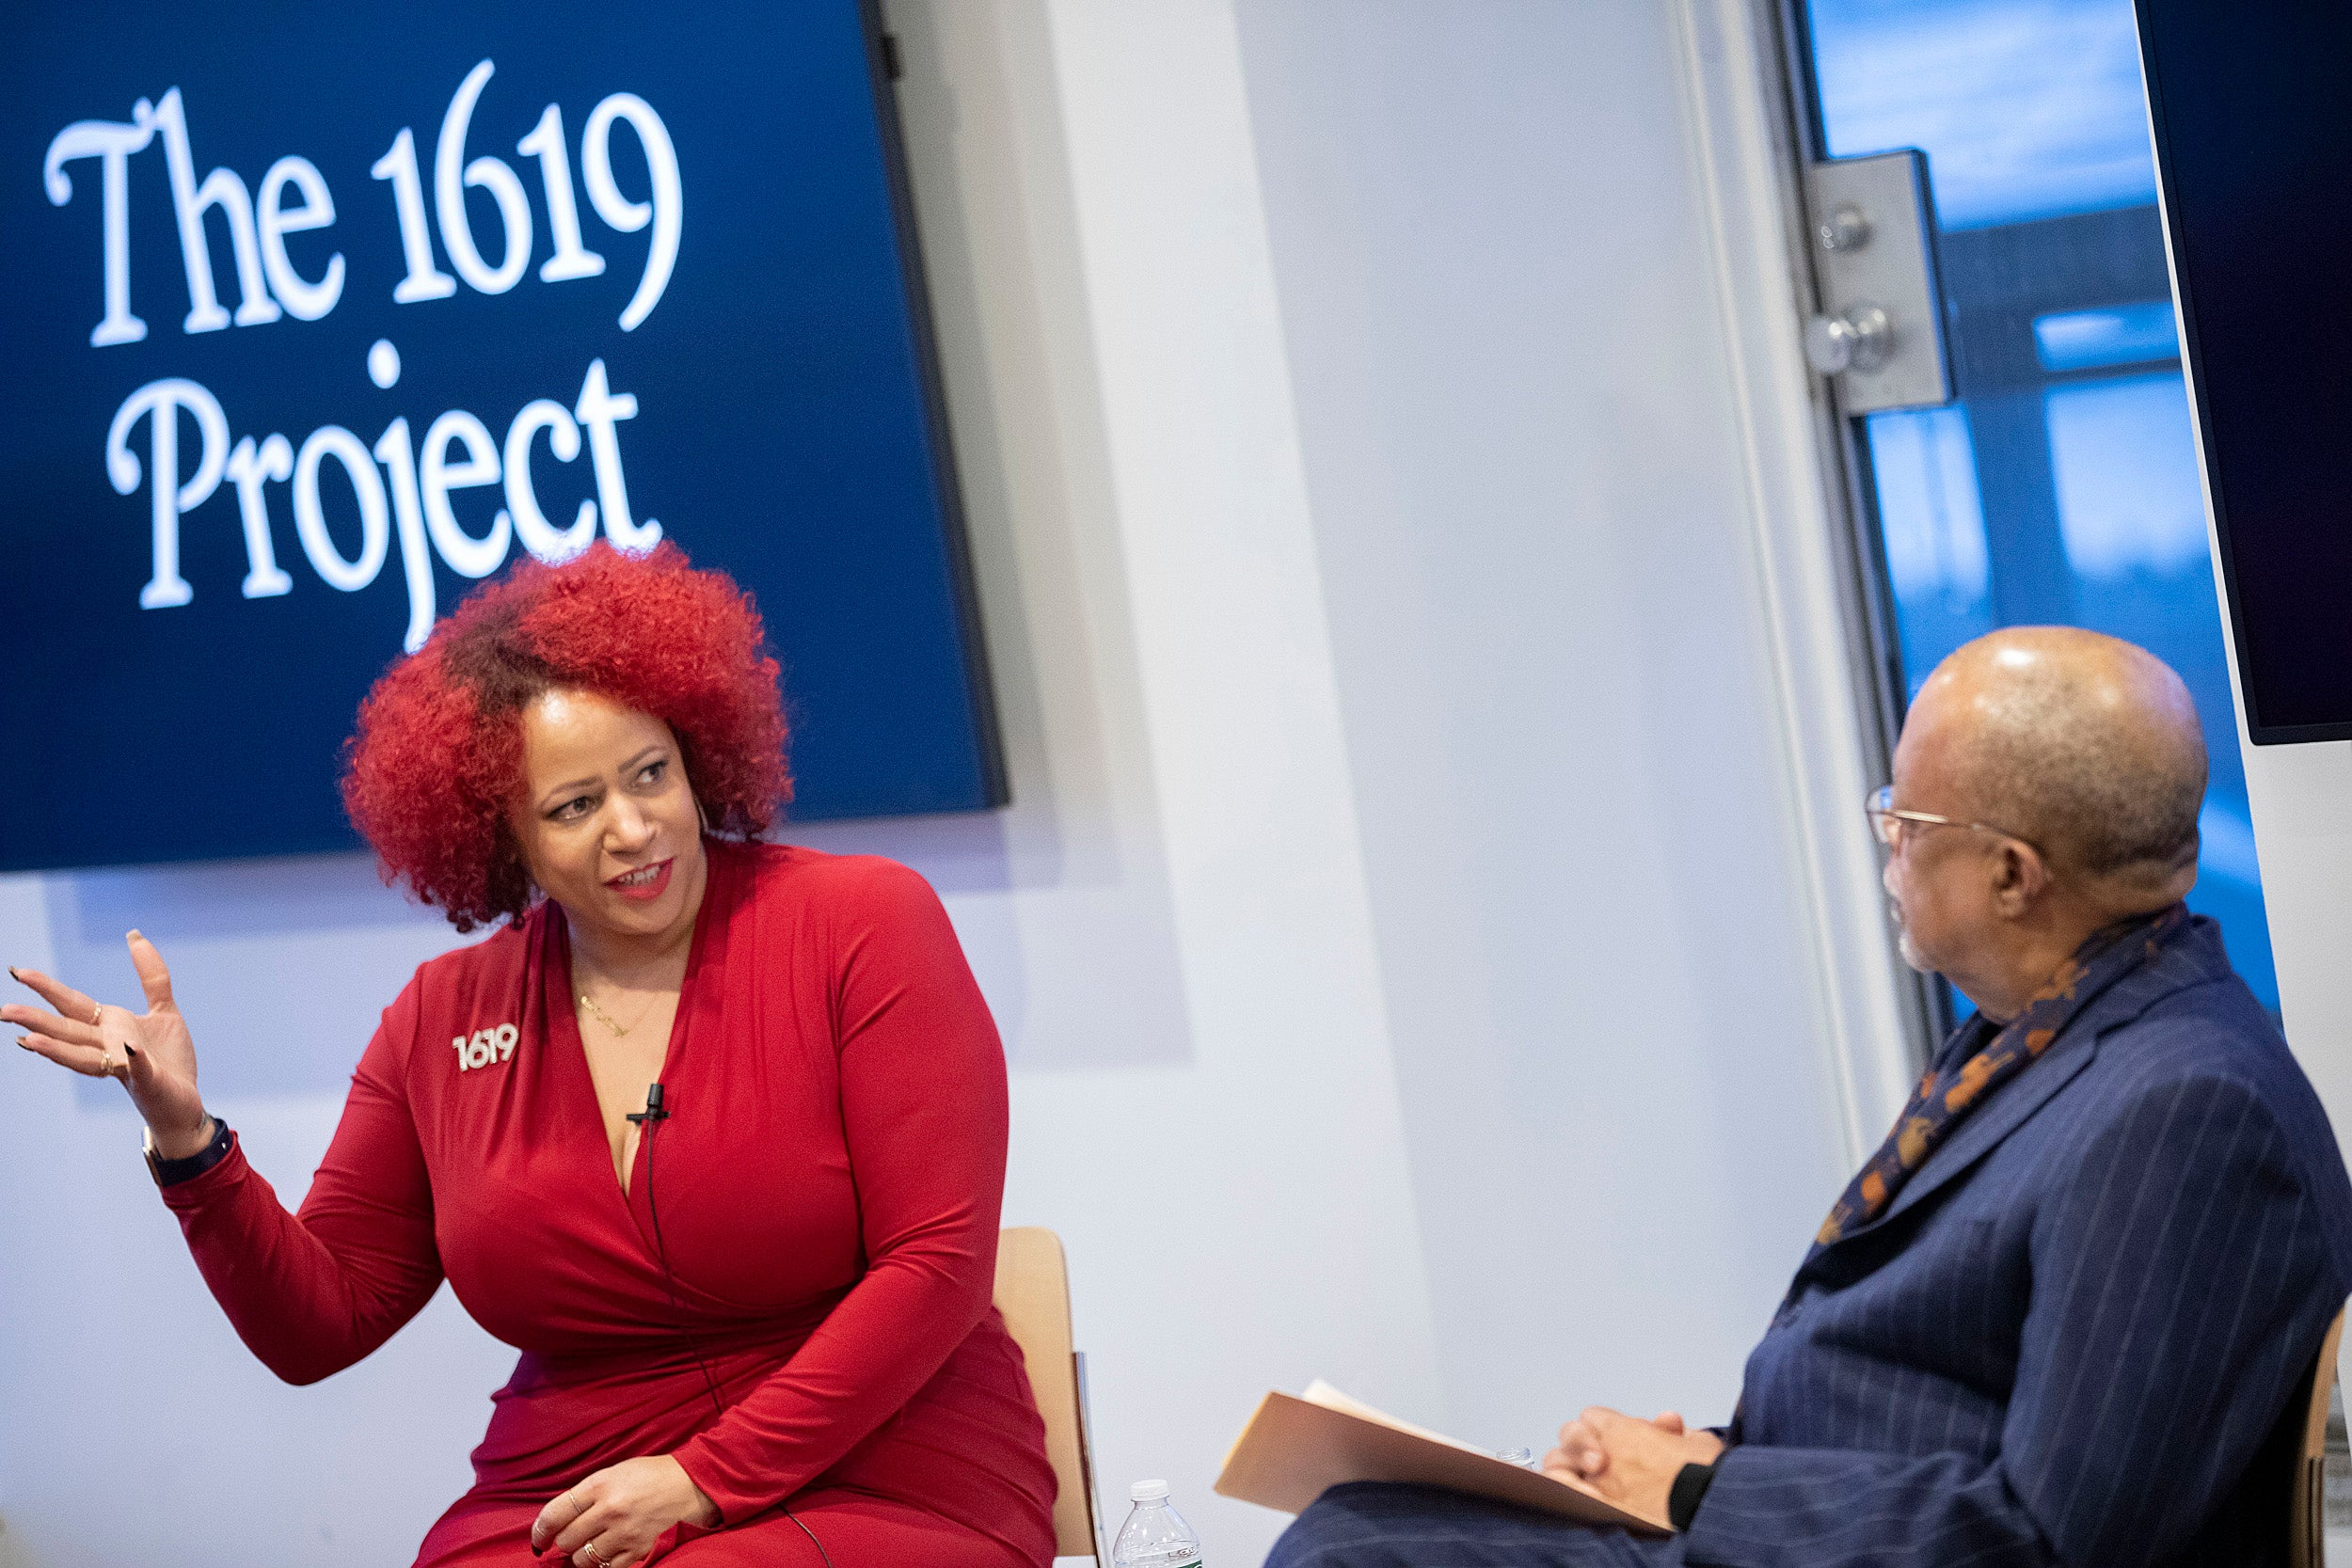 The 1619 Project started with a tweet, says Nikole Hannah-Jones